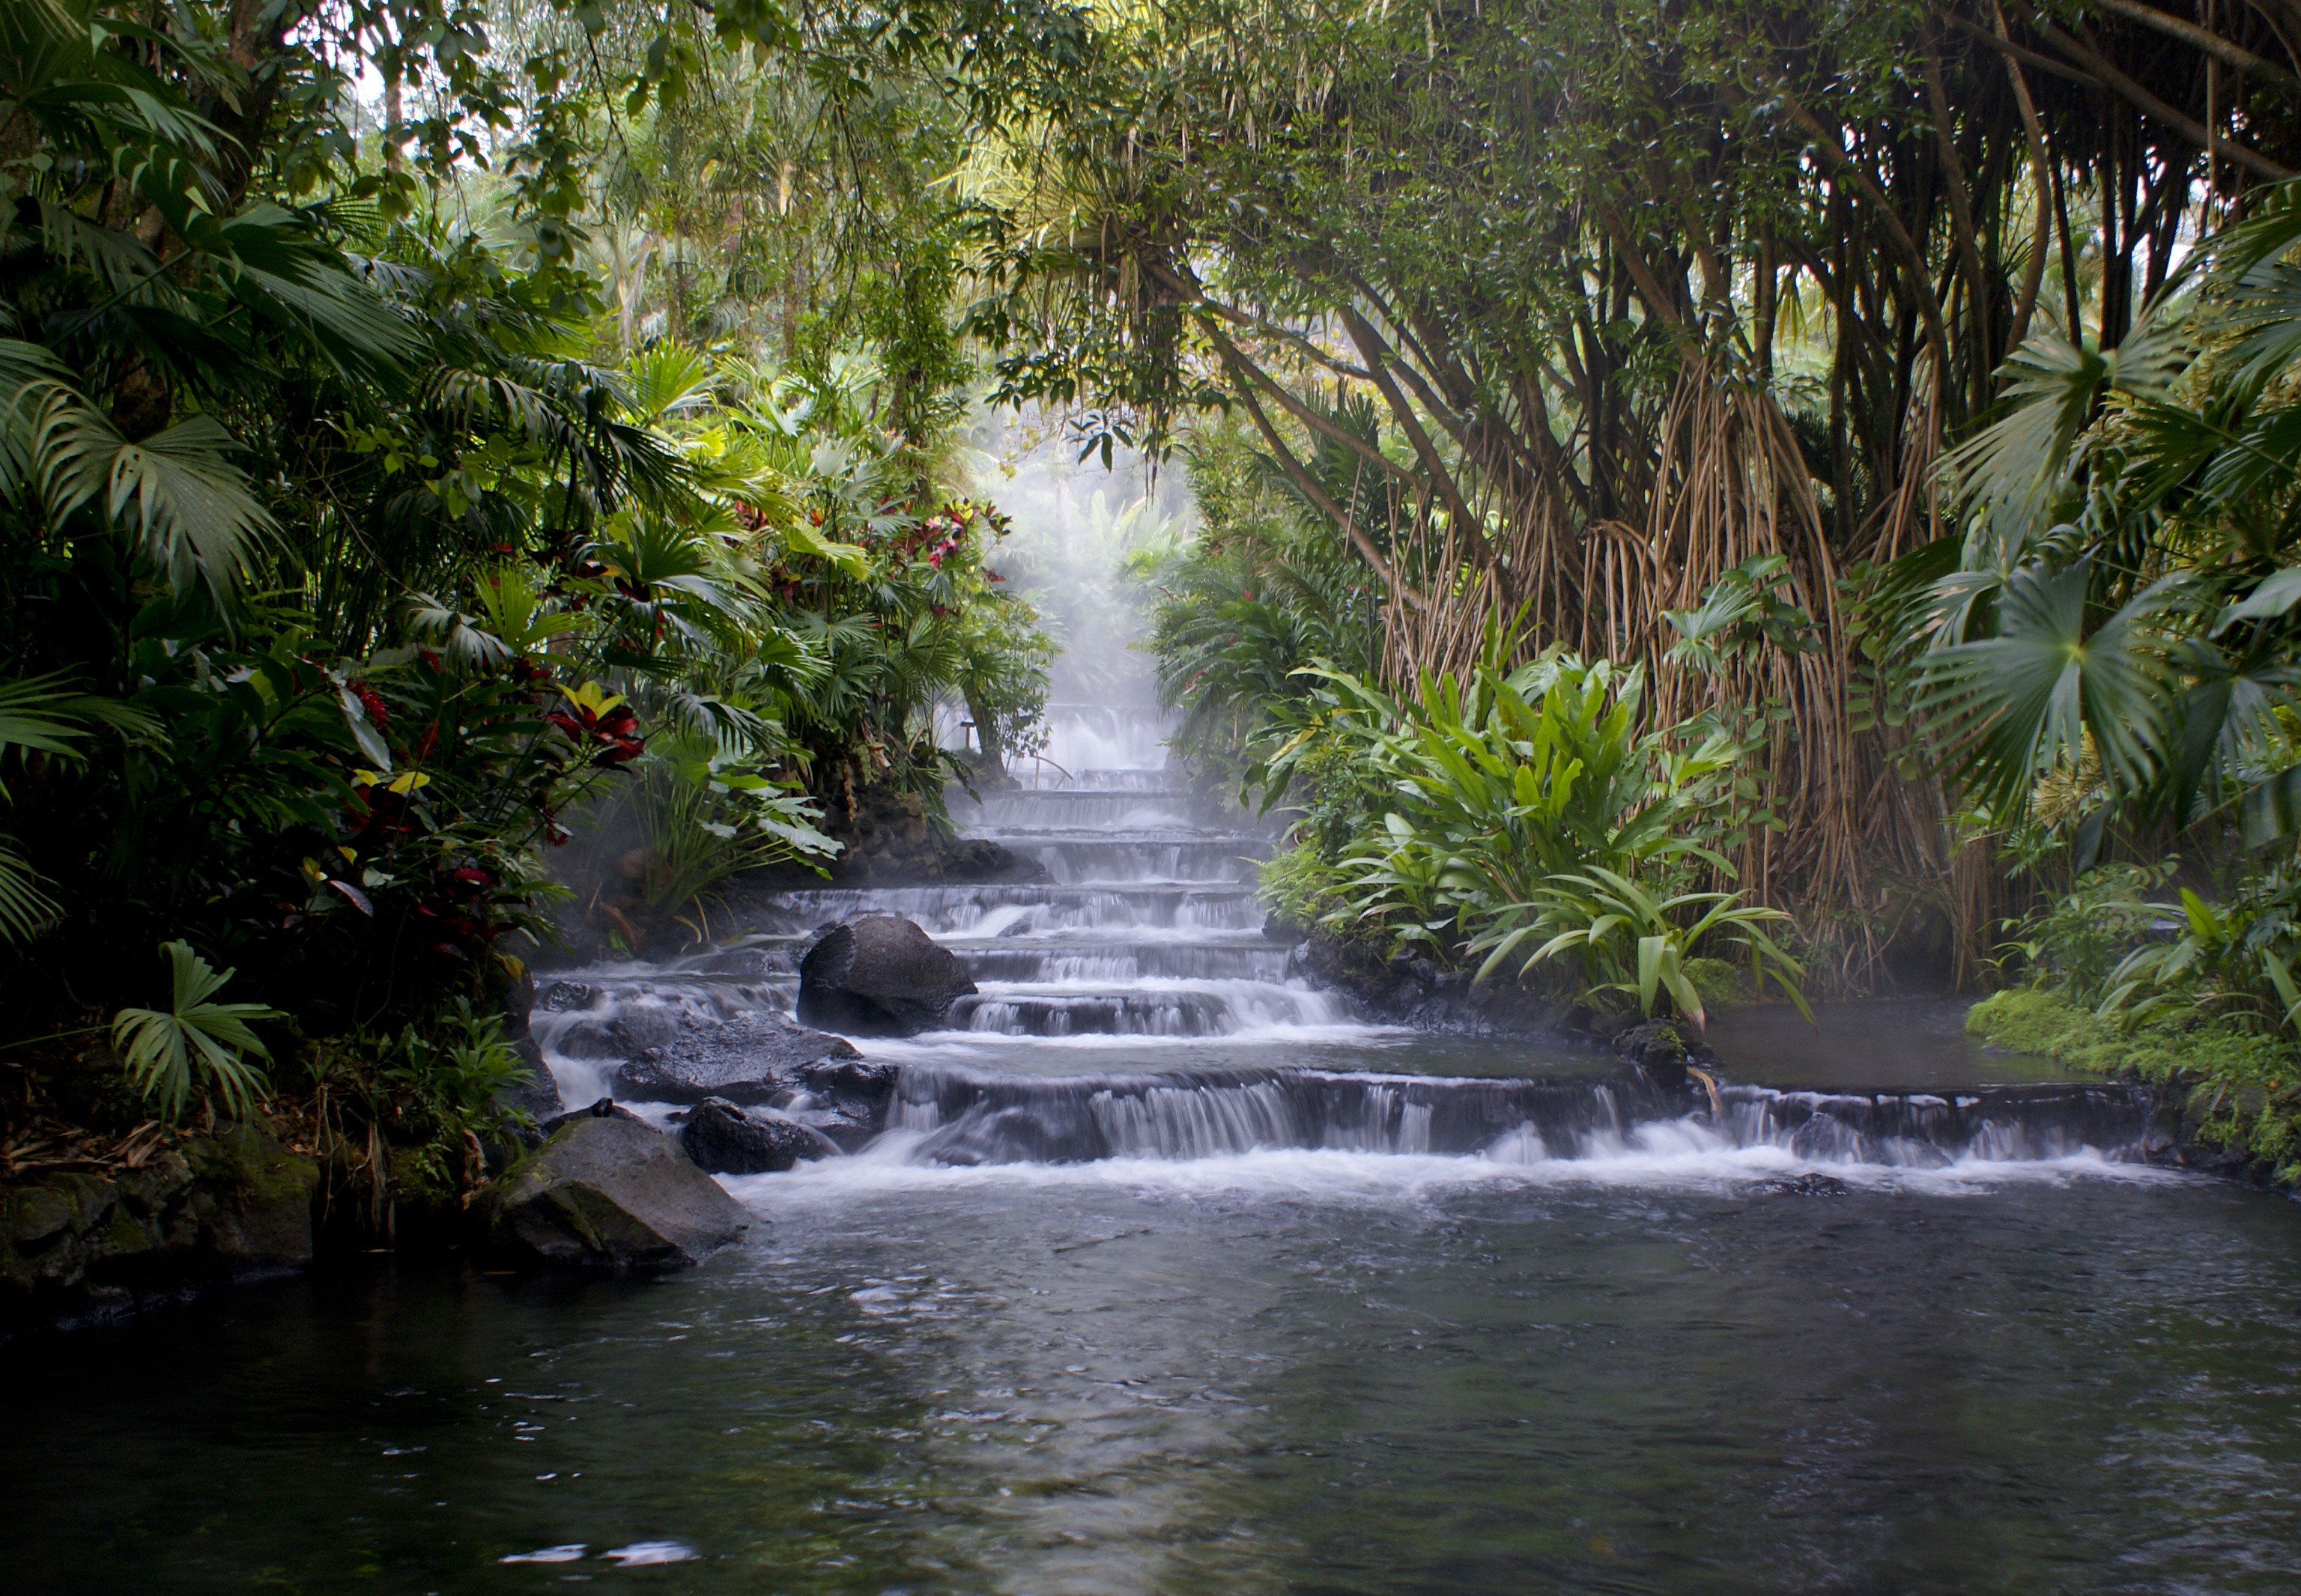 Outdoors + Adventure Trip Ideas tree outdoor water Nature vegetation water resources body of water nature reserve watercourse rainforest Waterfall arecales water feature stream creek Jungle River botanical garden palm tree tropics riparian zone old growth forest landscape Forest plant arroyo pond bank tributary state park